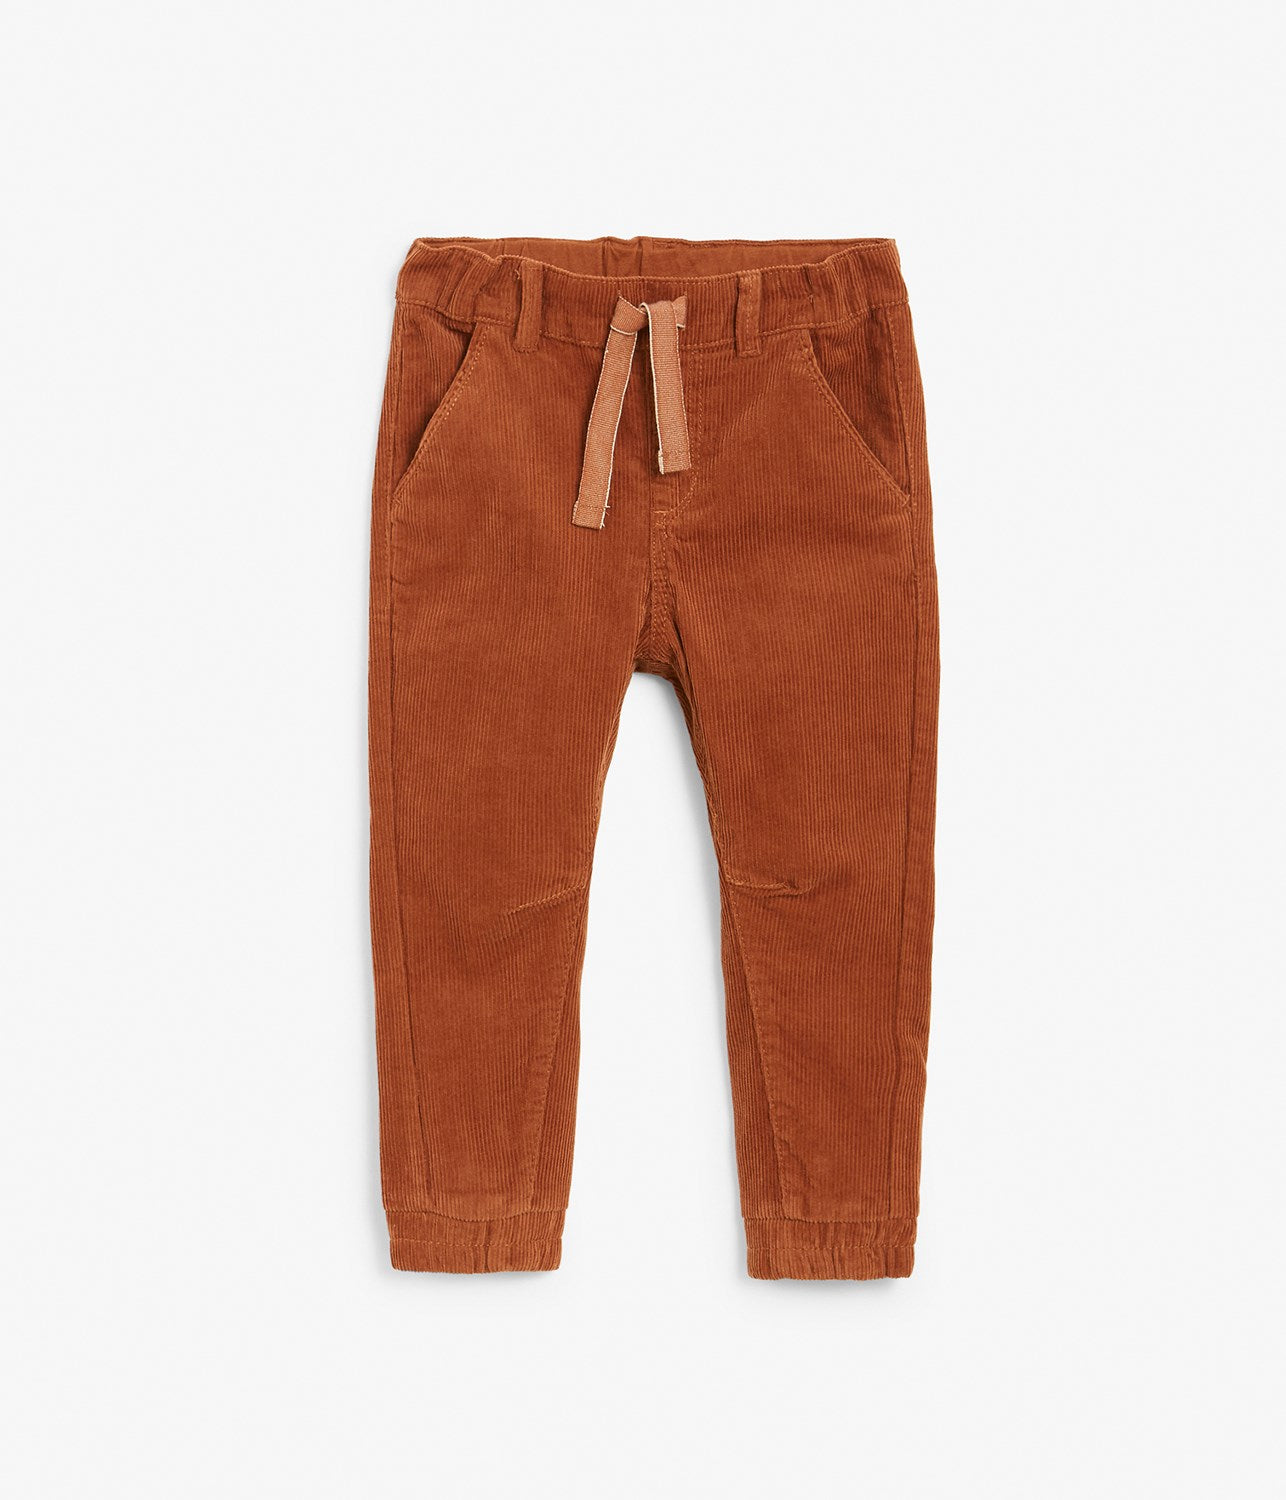 Kids brown drawstring corduroy trousers